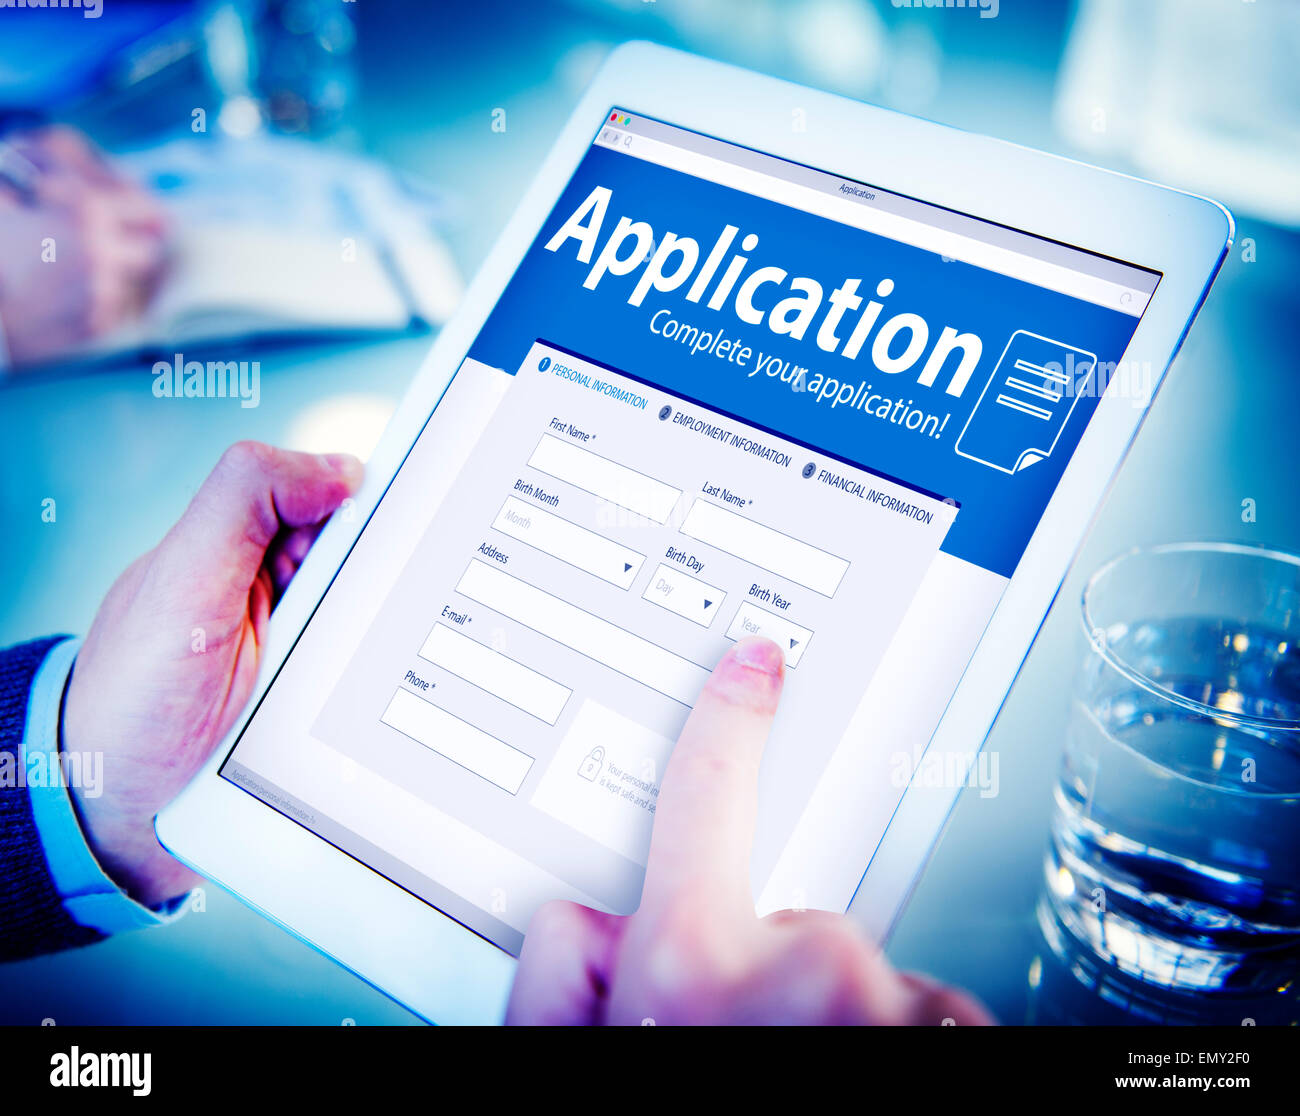 Application Human Resources Hiring Job Recruitment Employment Concept - Stock Image